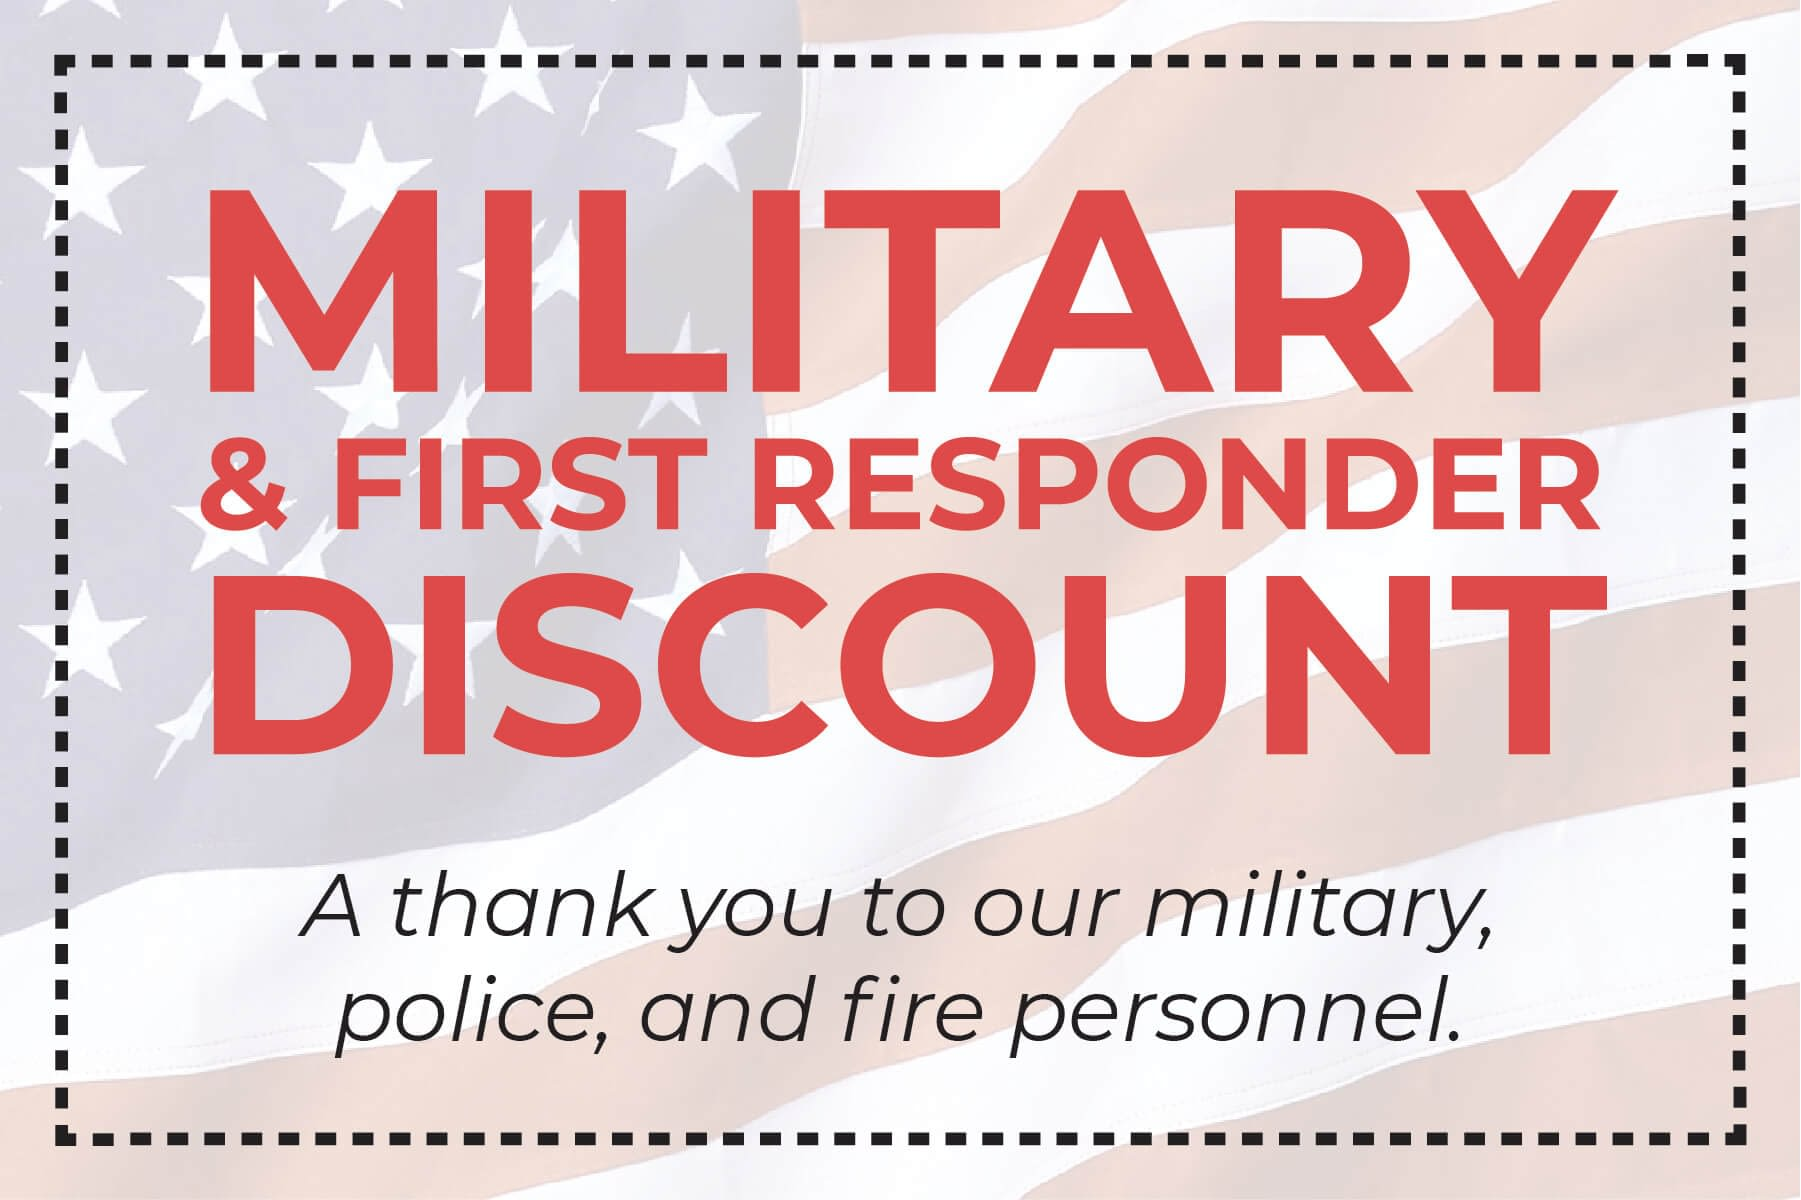 military and first responder hvac discount coupon